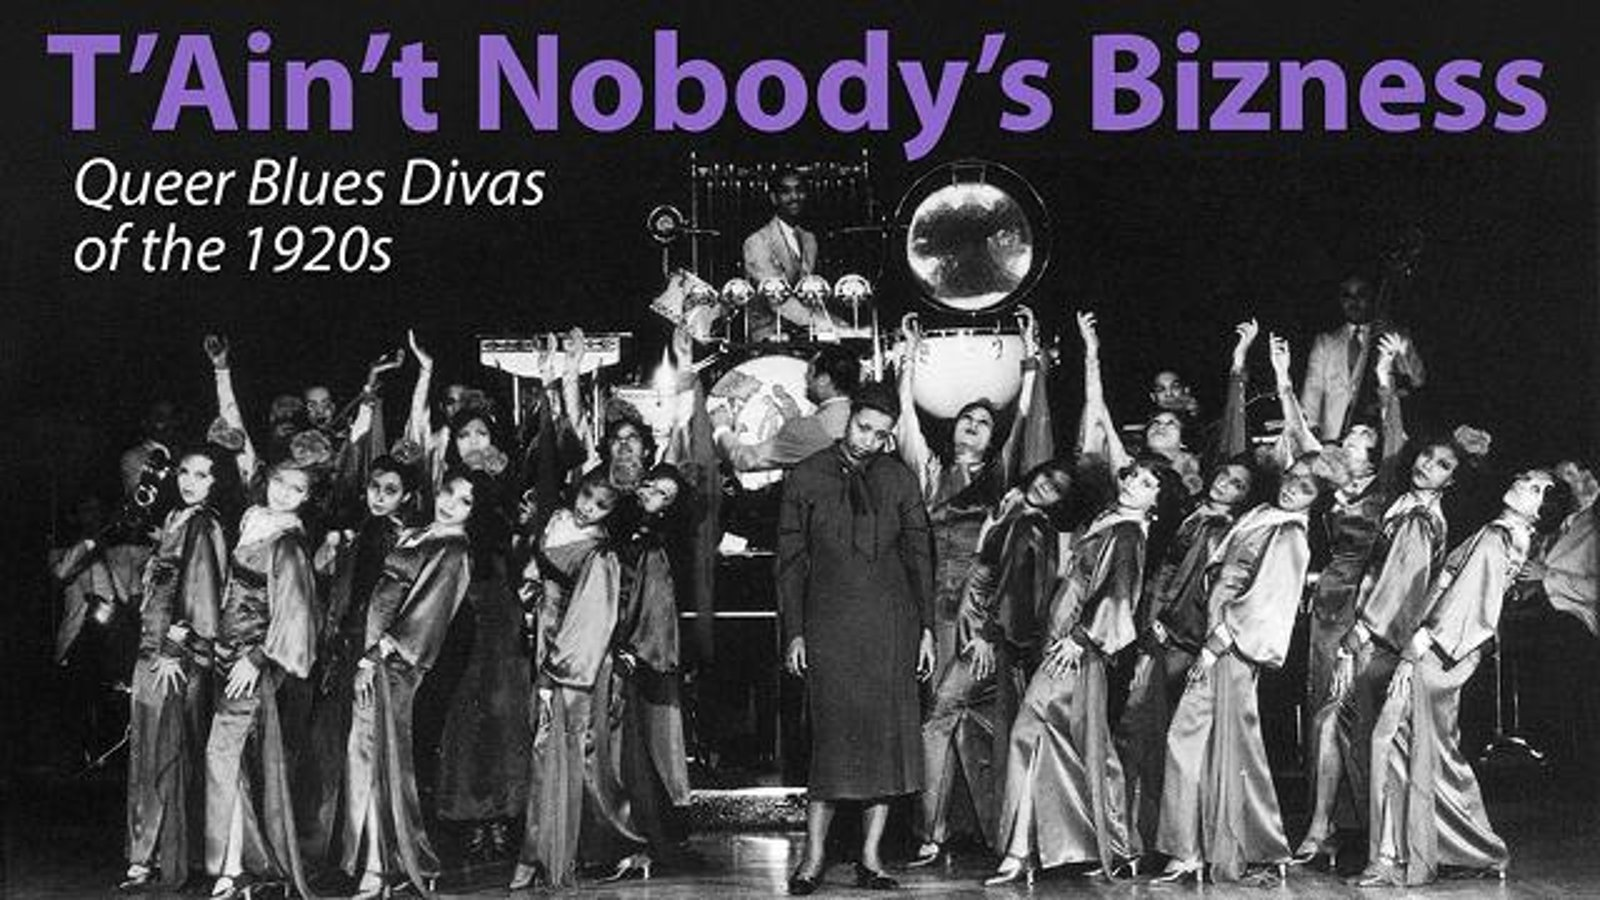 T'Ain't Nobody's Bizness - Queer Blues Divas of the 1920s